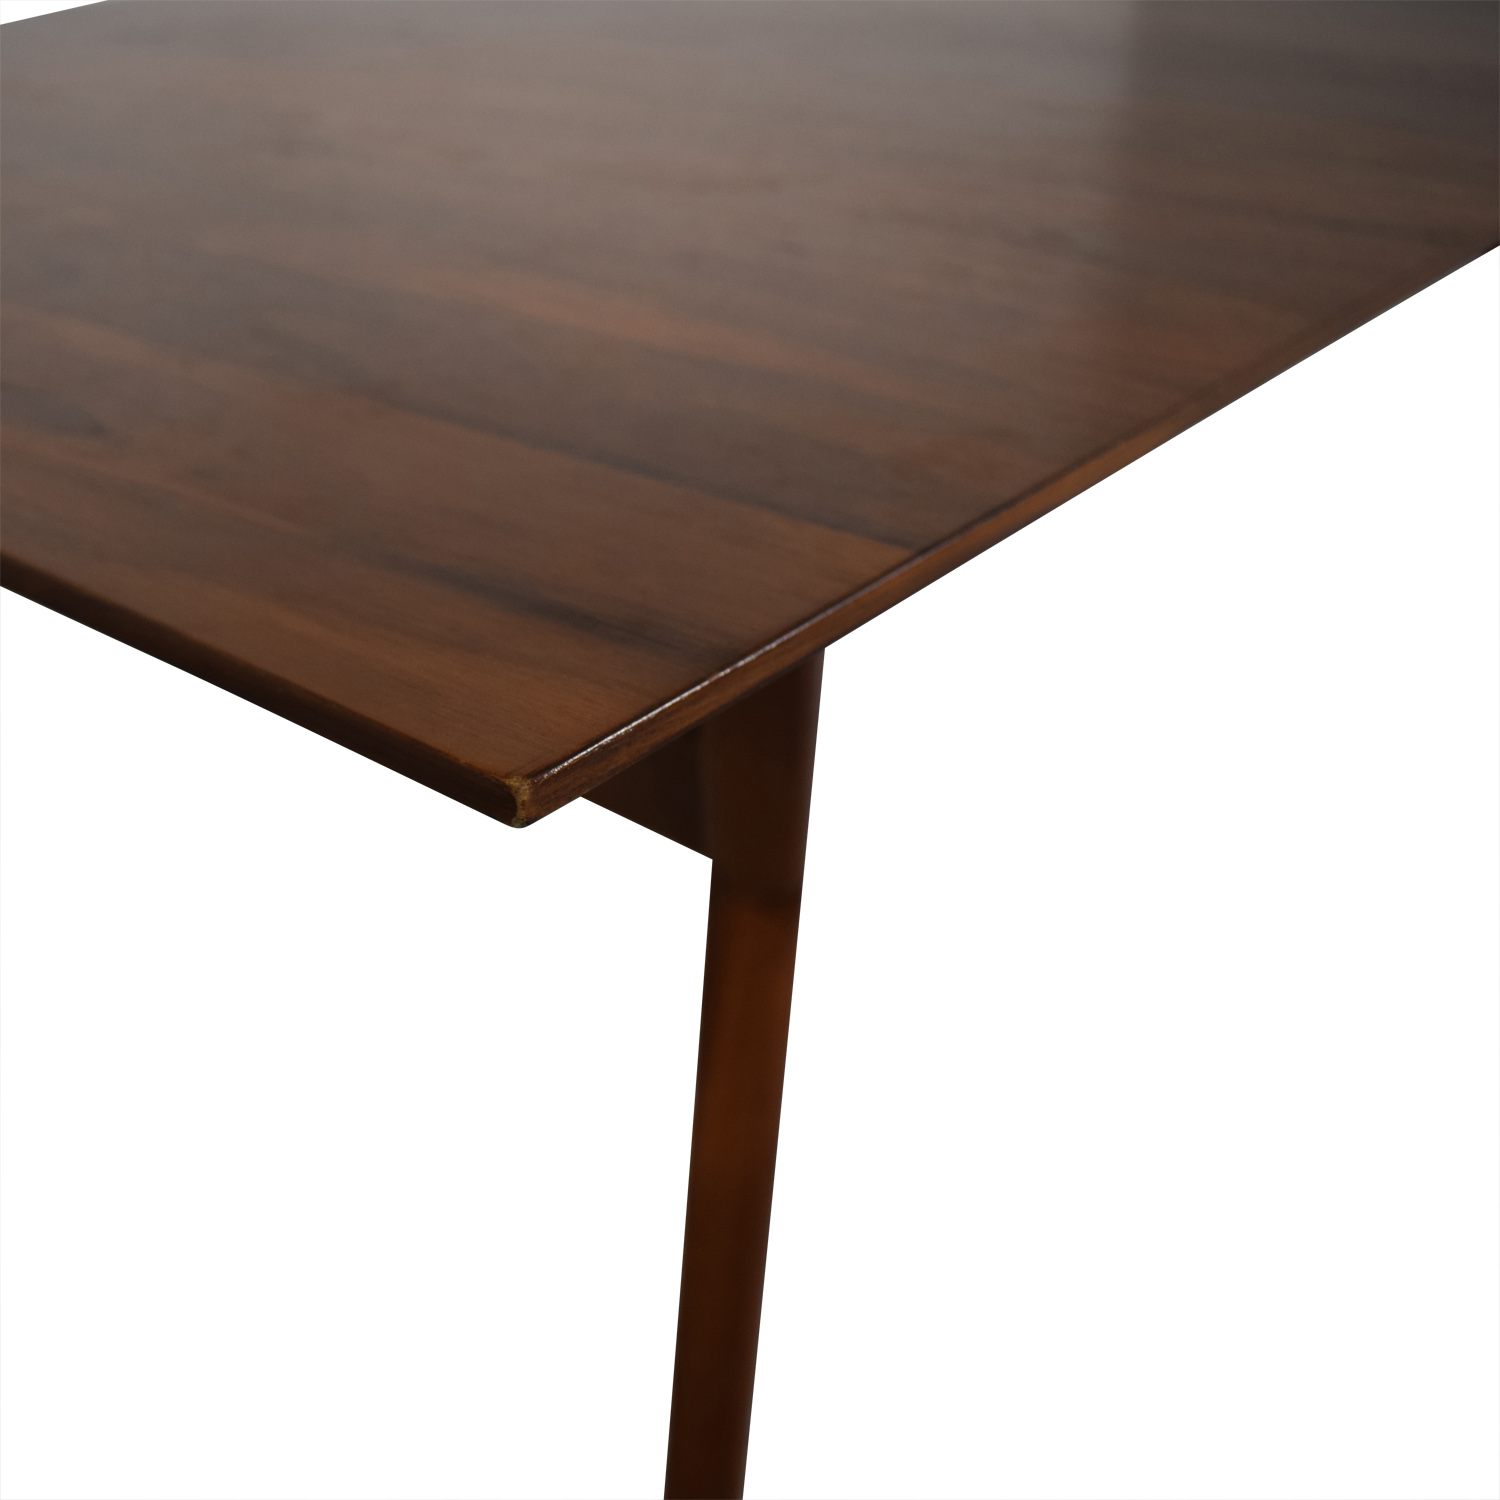 West Elm West Elm Mid-Century Expandable Dining Table on sale